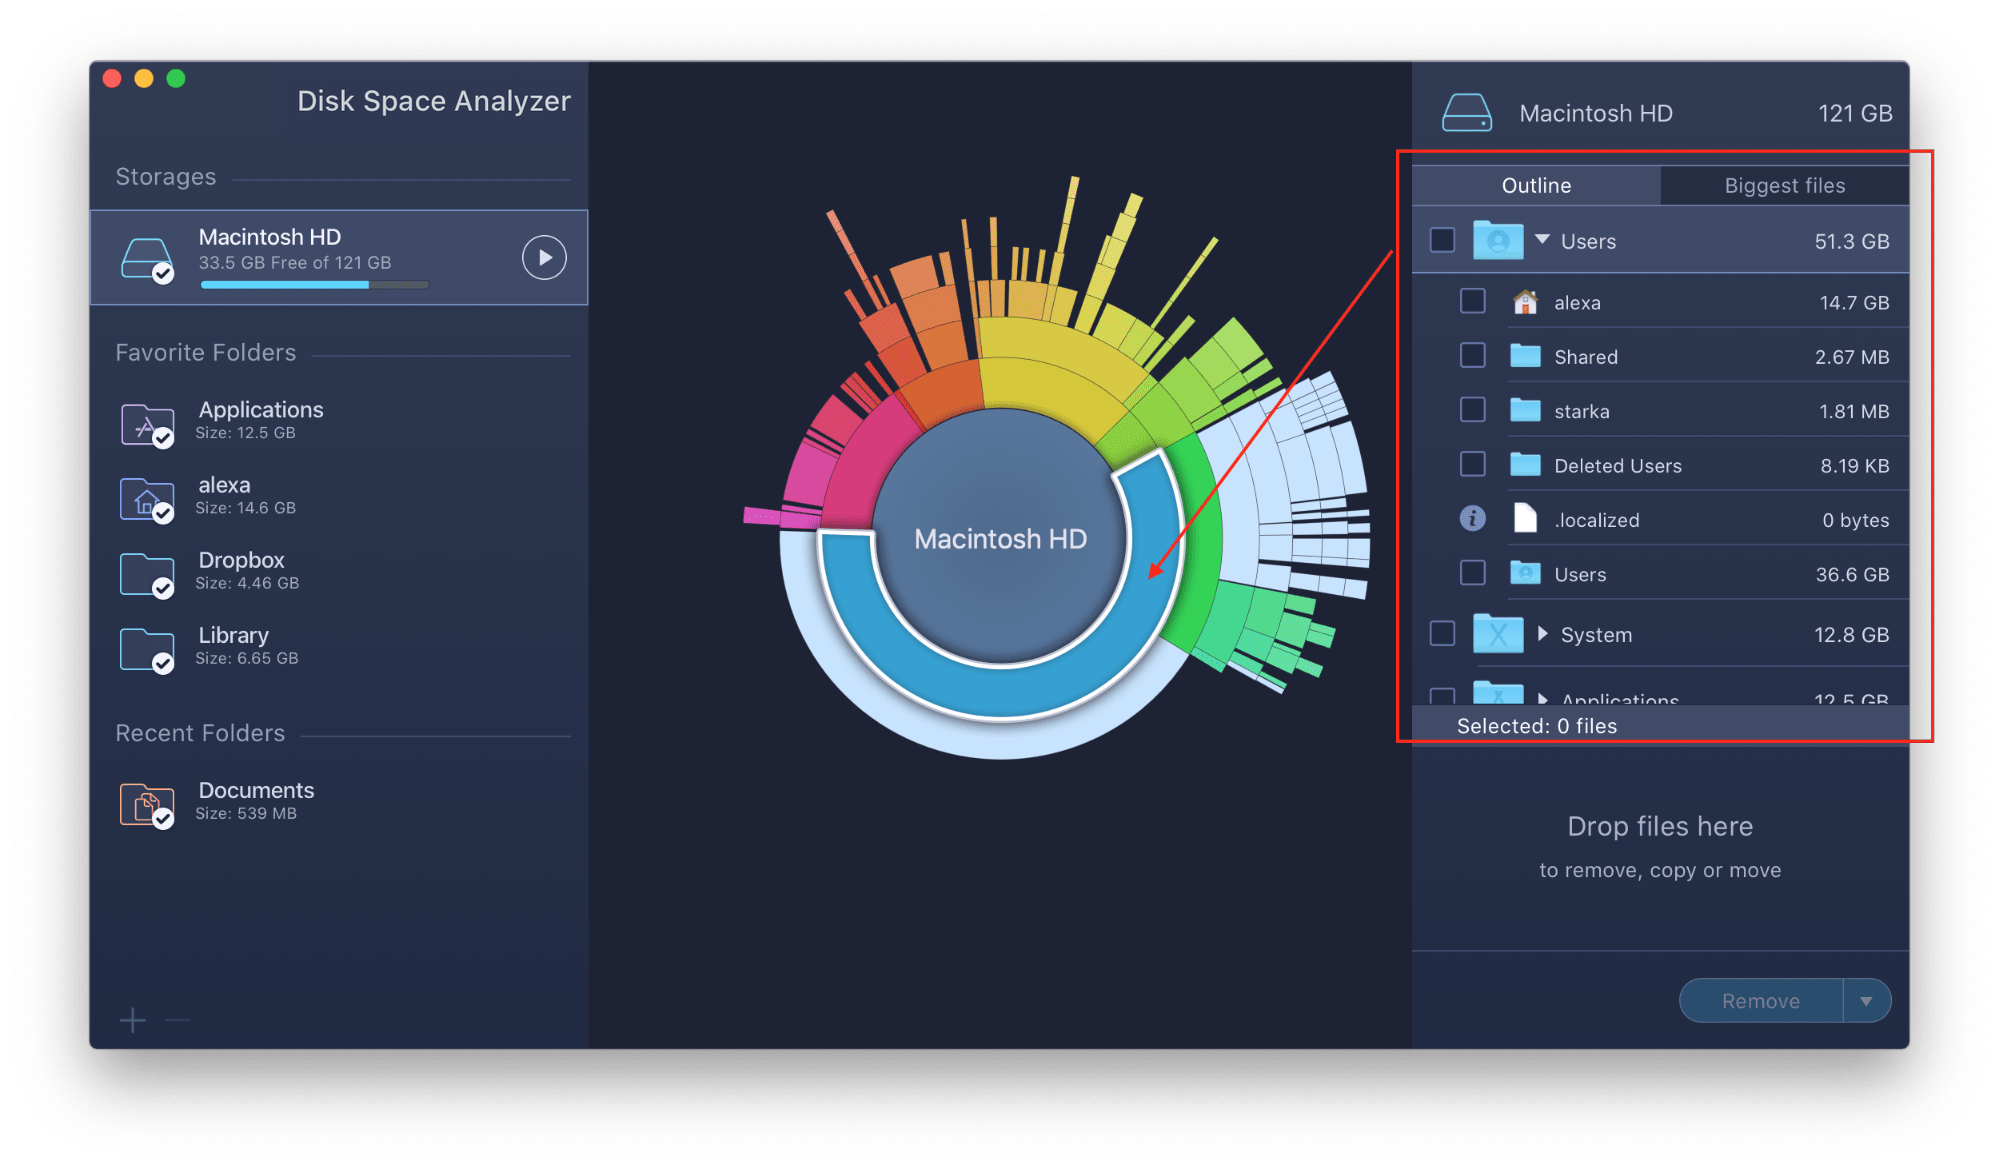 Disk Space Analyzer with folder and outline highlighted